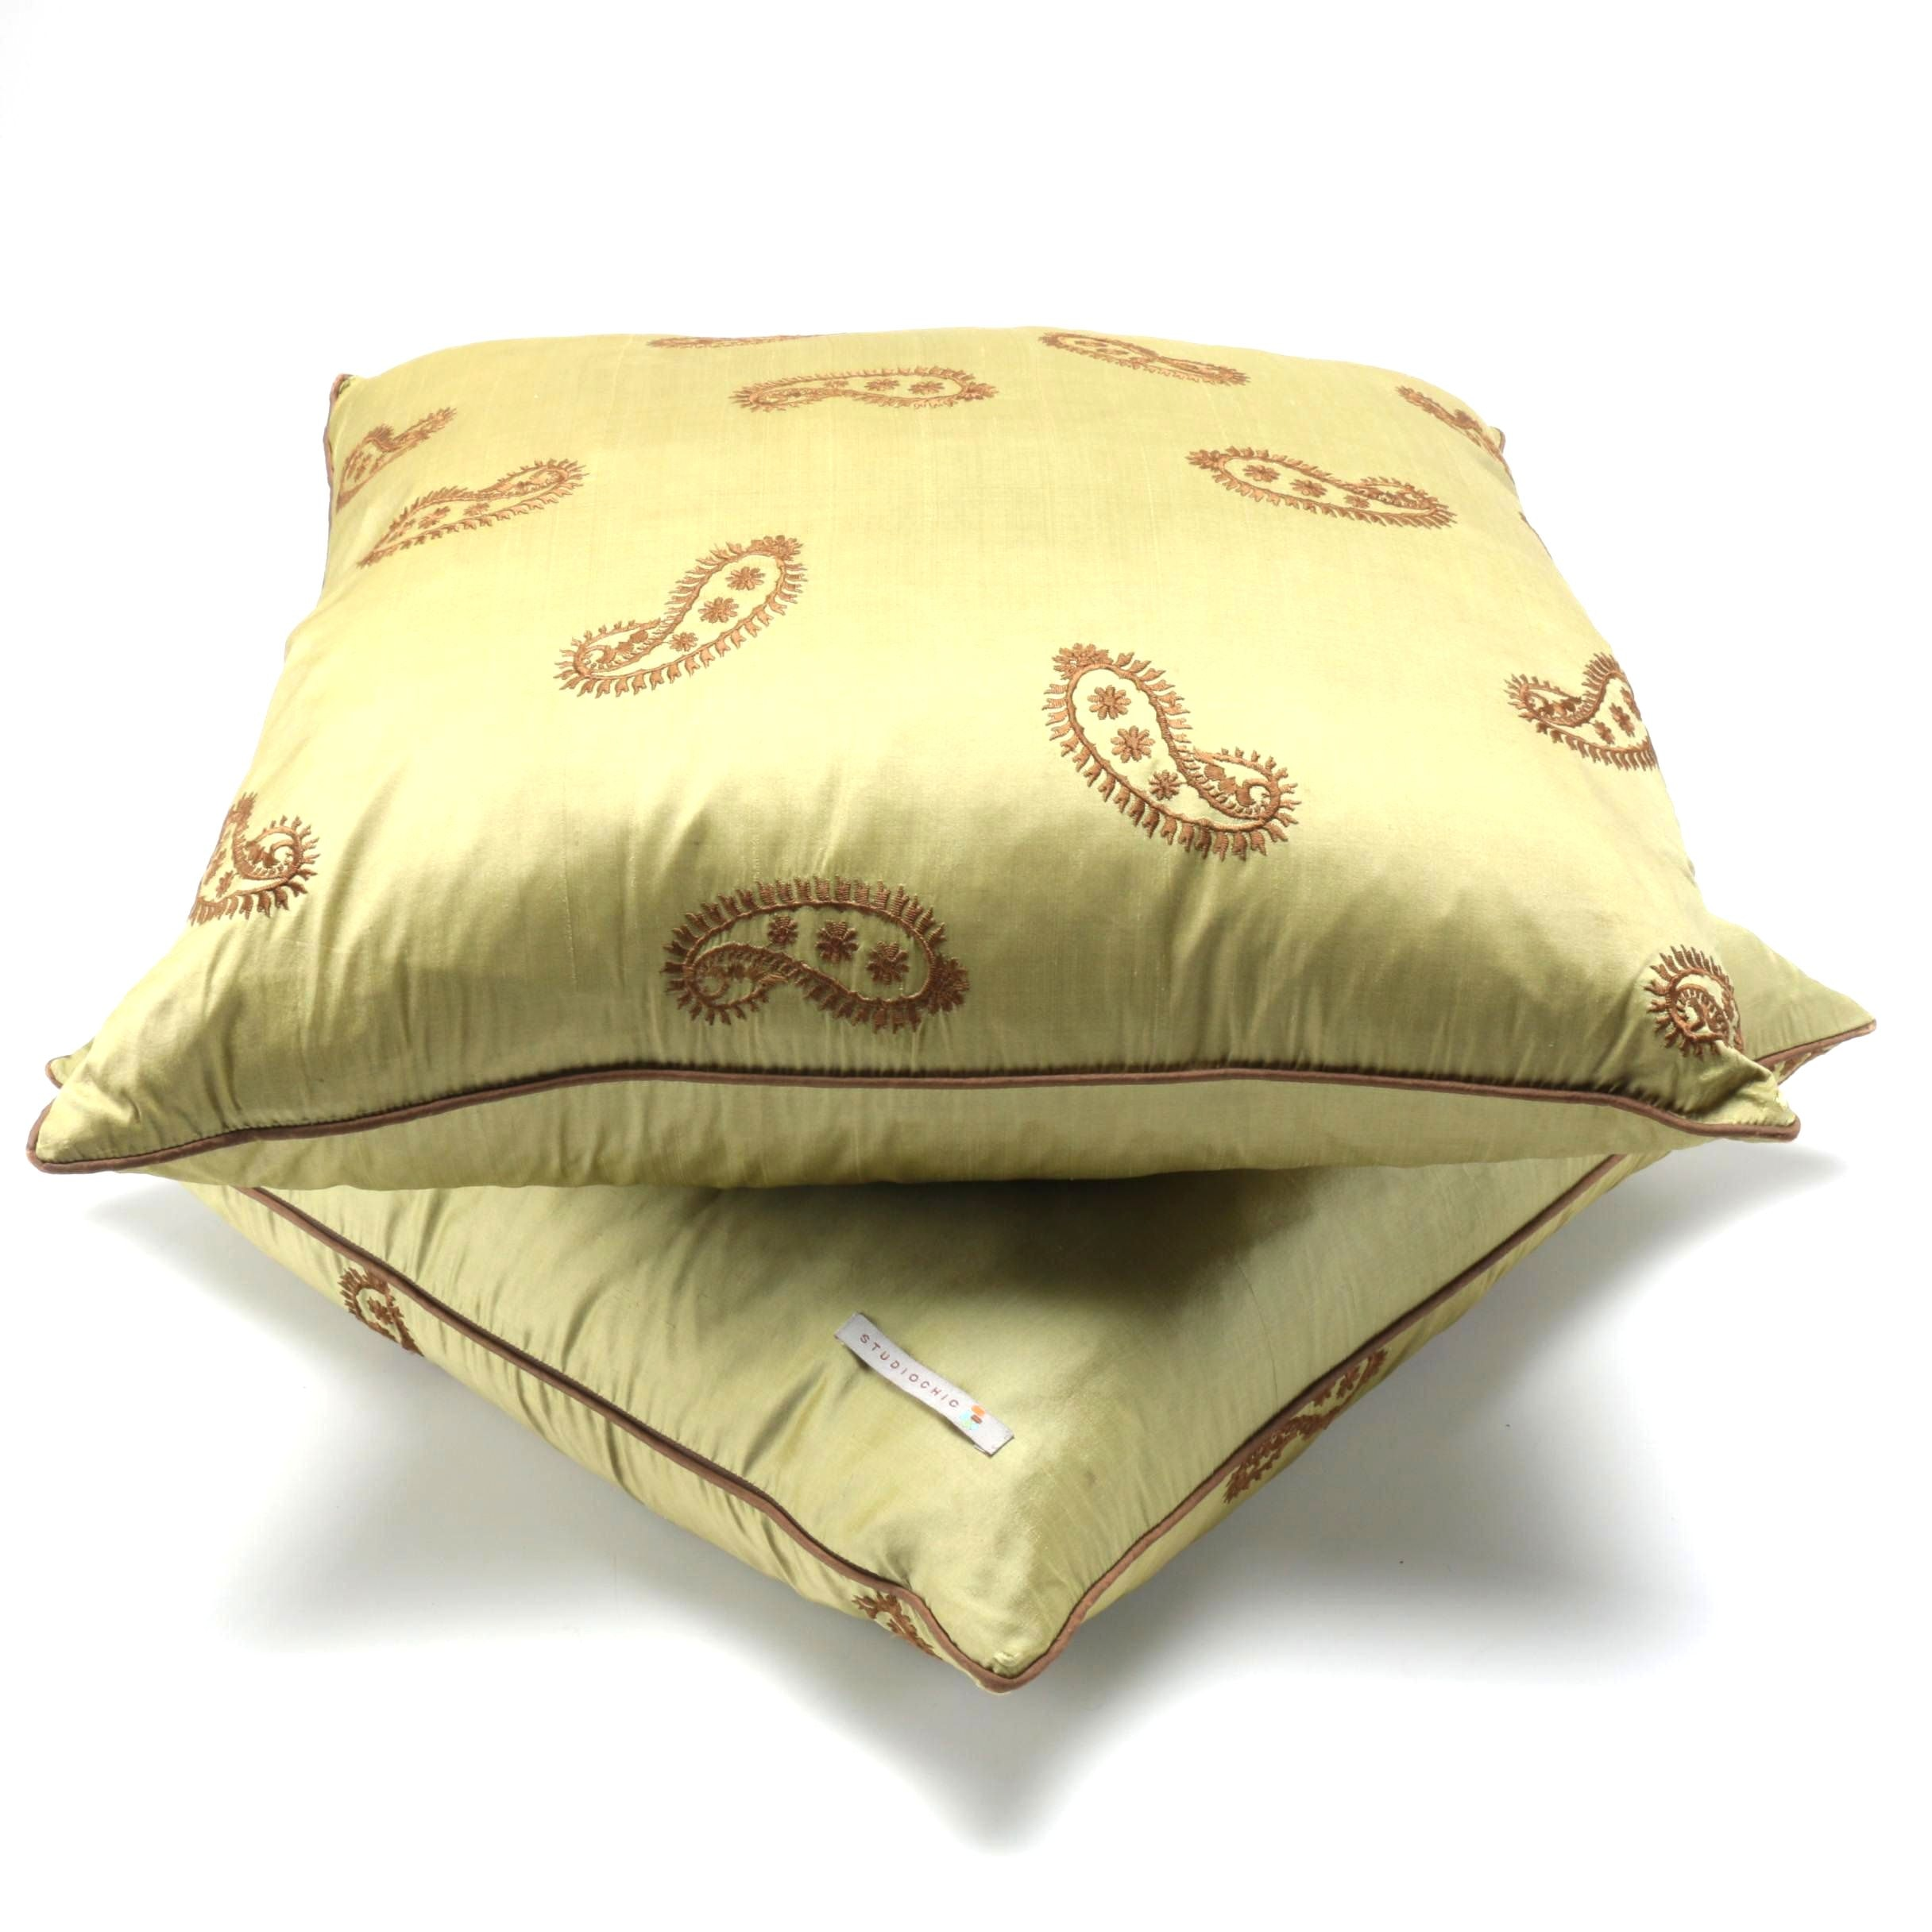 Embroidered Down Filled Silk Pillows by Studio Chic